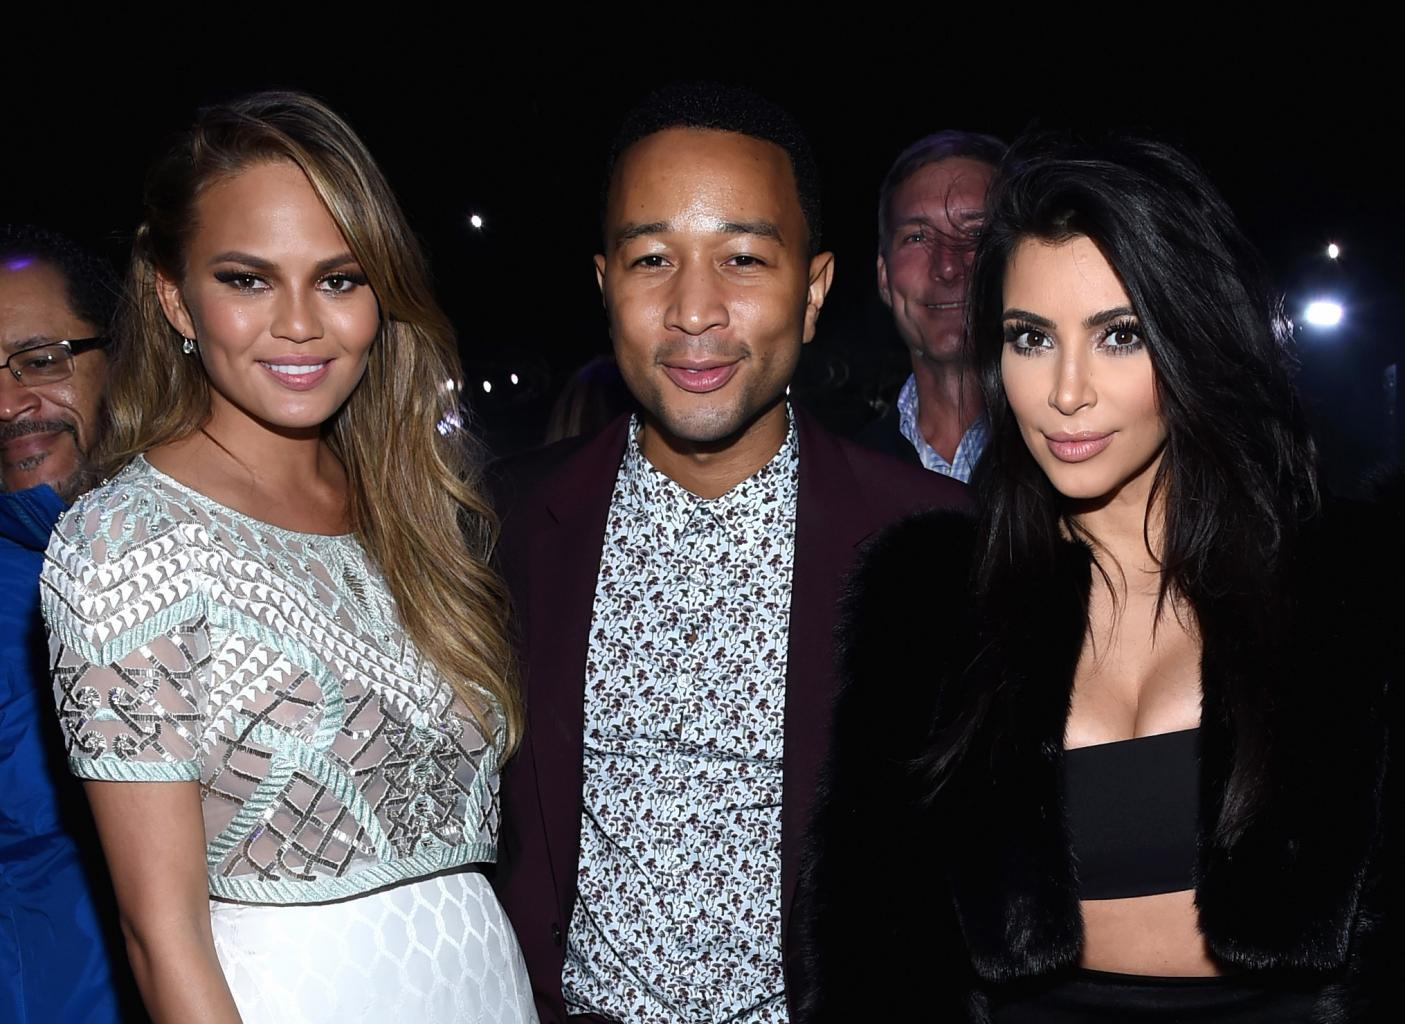 Chrissy Teigen and John Legend Share How Friend Kim Kardashian West  's    Horrific '  Robbery Changed Their Lives